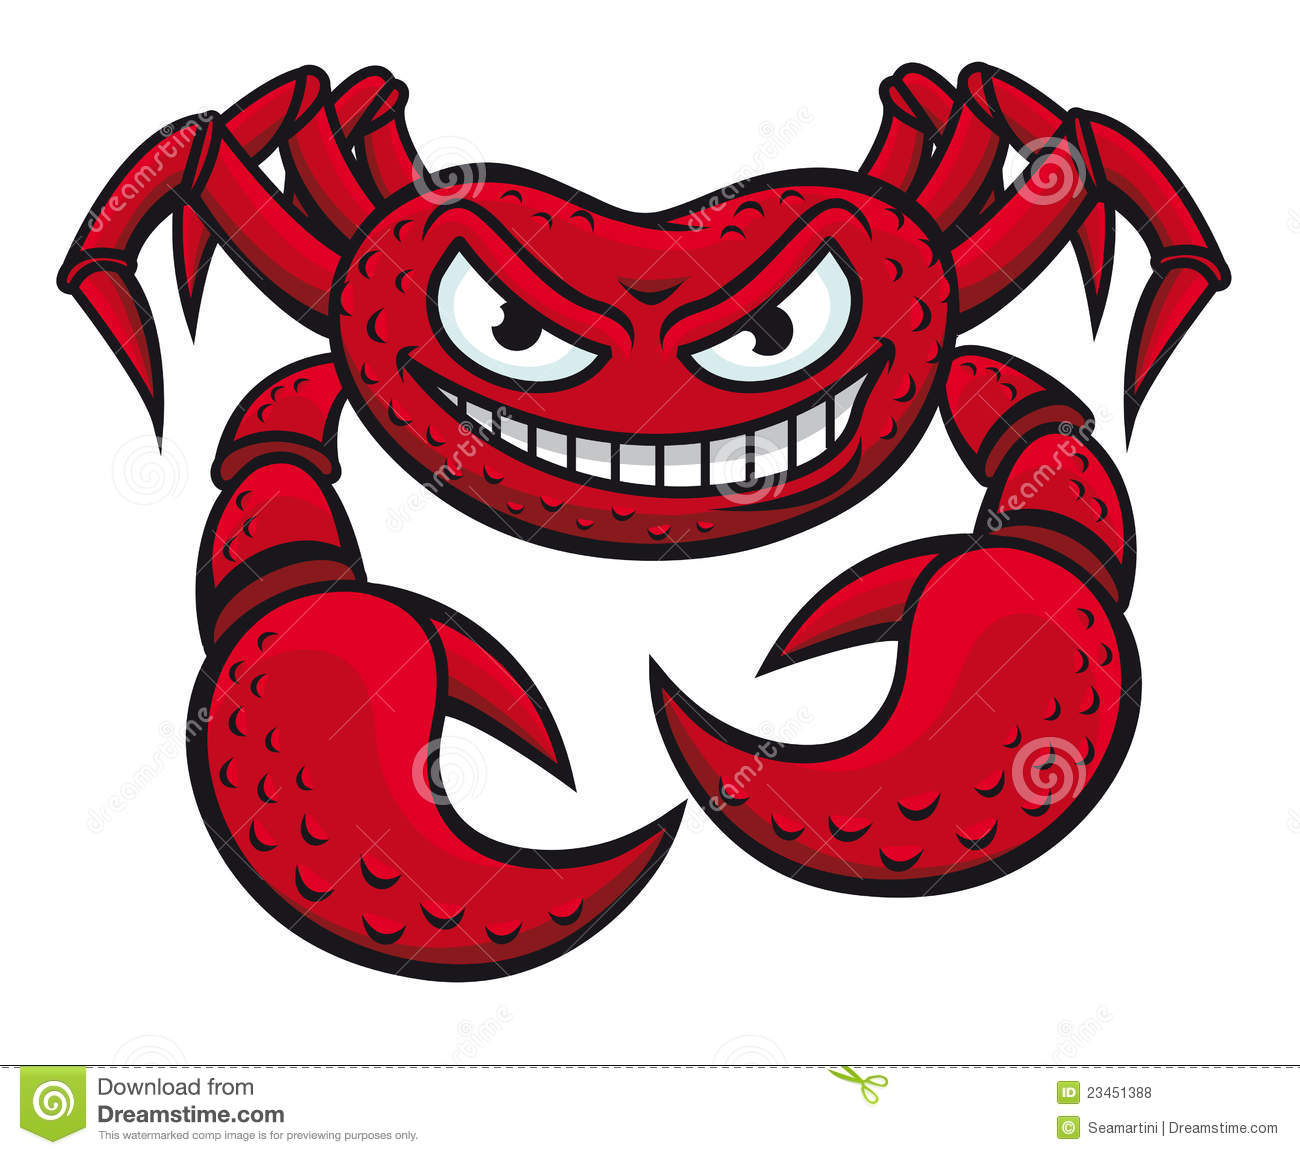 Crab In Cartoon Style Isolated On White Background For Mascot Design